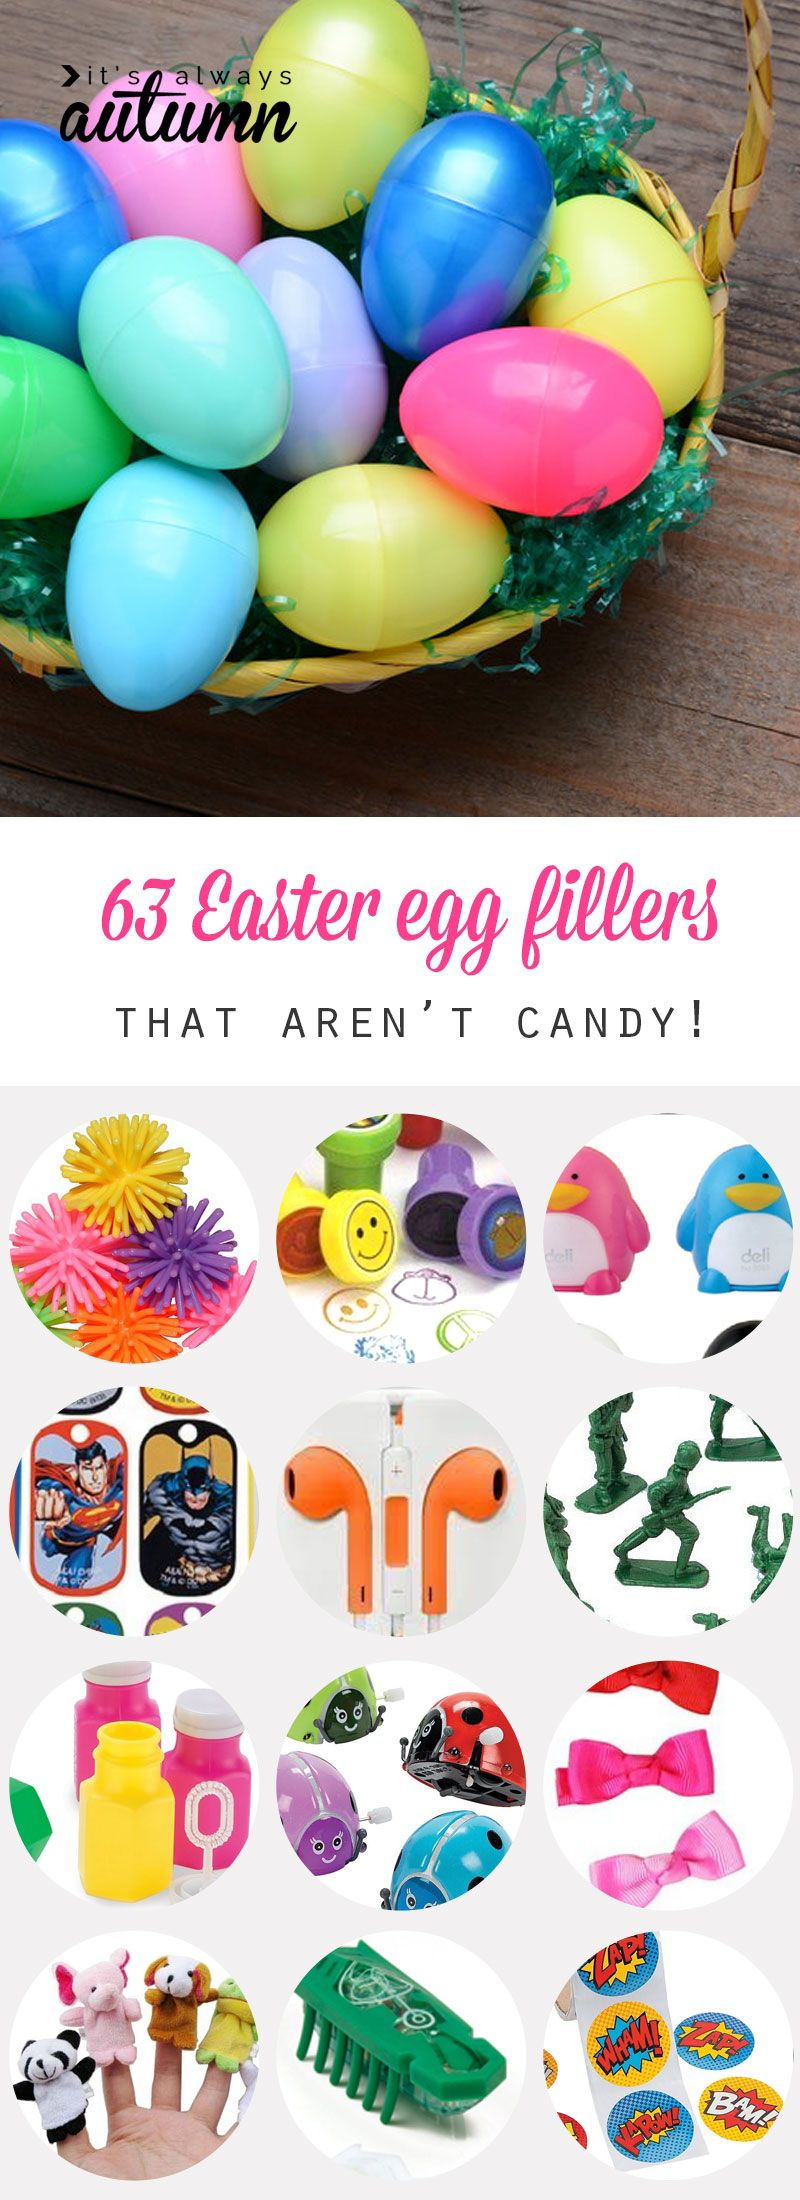 Easter egg filler ideas that arent candy easter egg and holidays 63 things to put in easter eggs that arent candy great ideas for negle Image collections